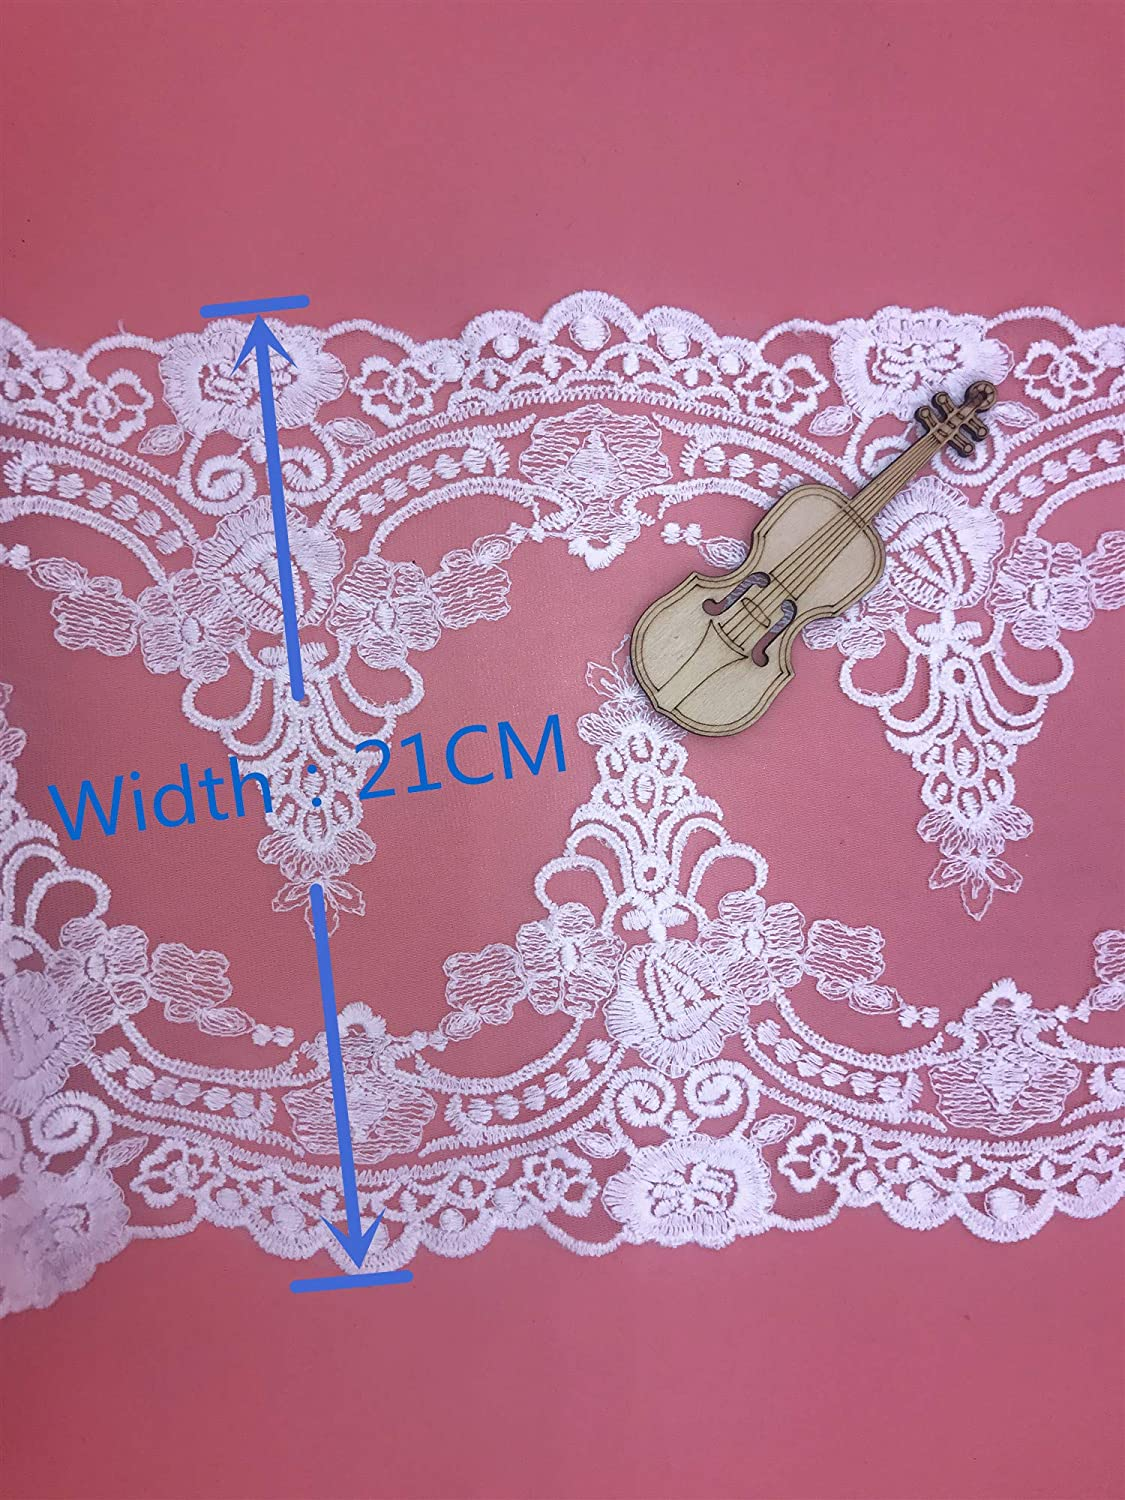 4 Yards in one Package 21CM Width Europe Ribbon Wedding Applique Inelastic Embroidery Lace Trim,Curtain Tablecloth Slipcover Bridal DIY Clothing//Accessories. White